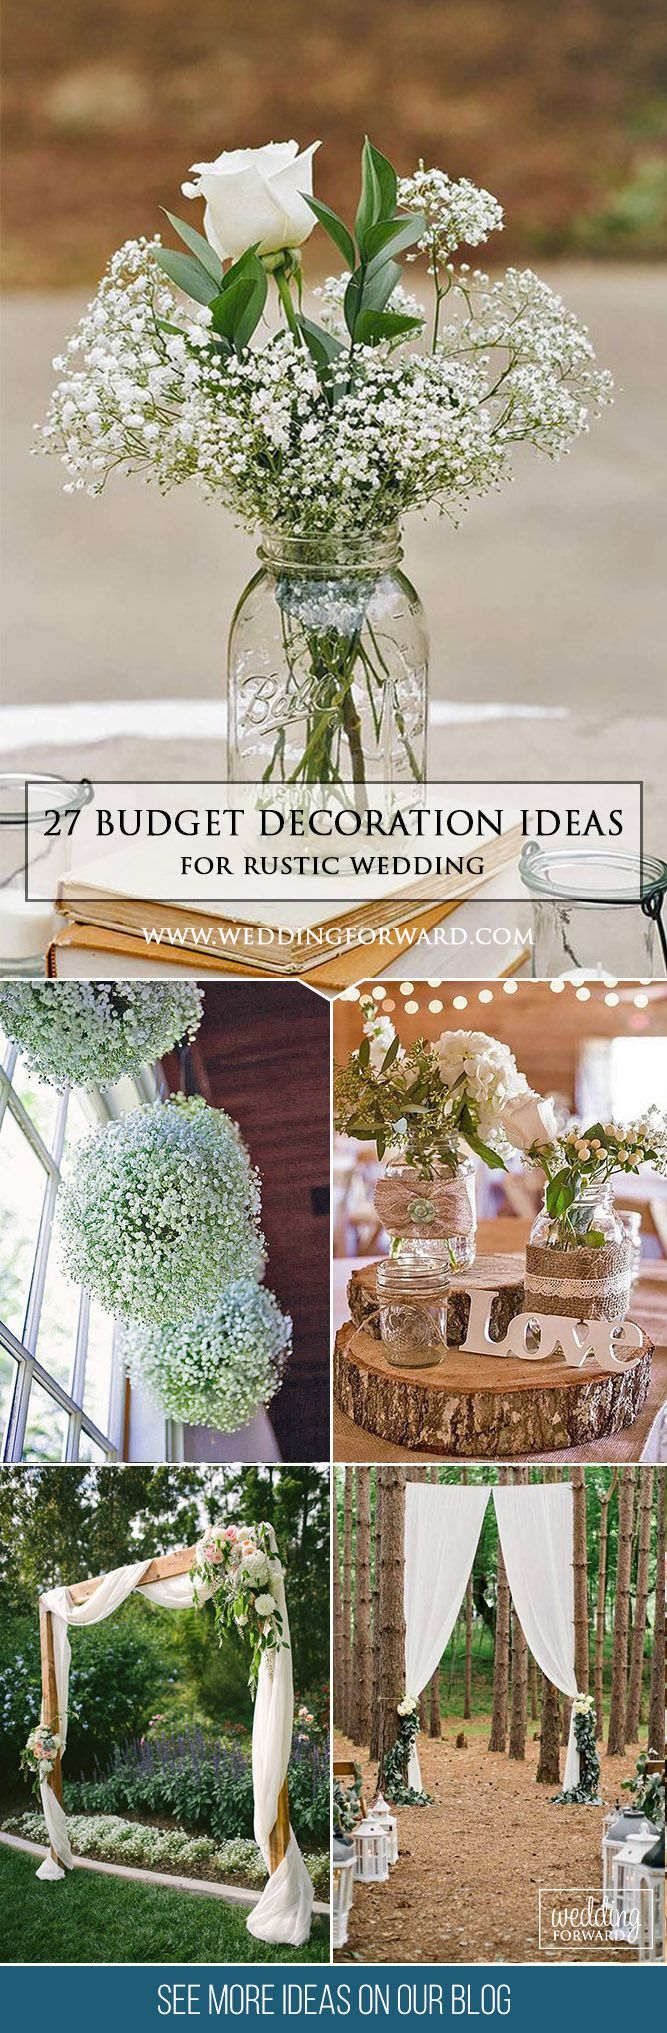 Country wedding decoration ideas   Ideas Of Budget Rustic Wedding Decorations  Tight budget only